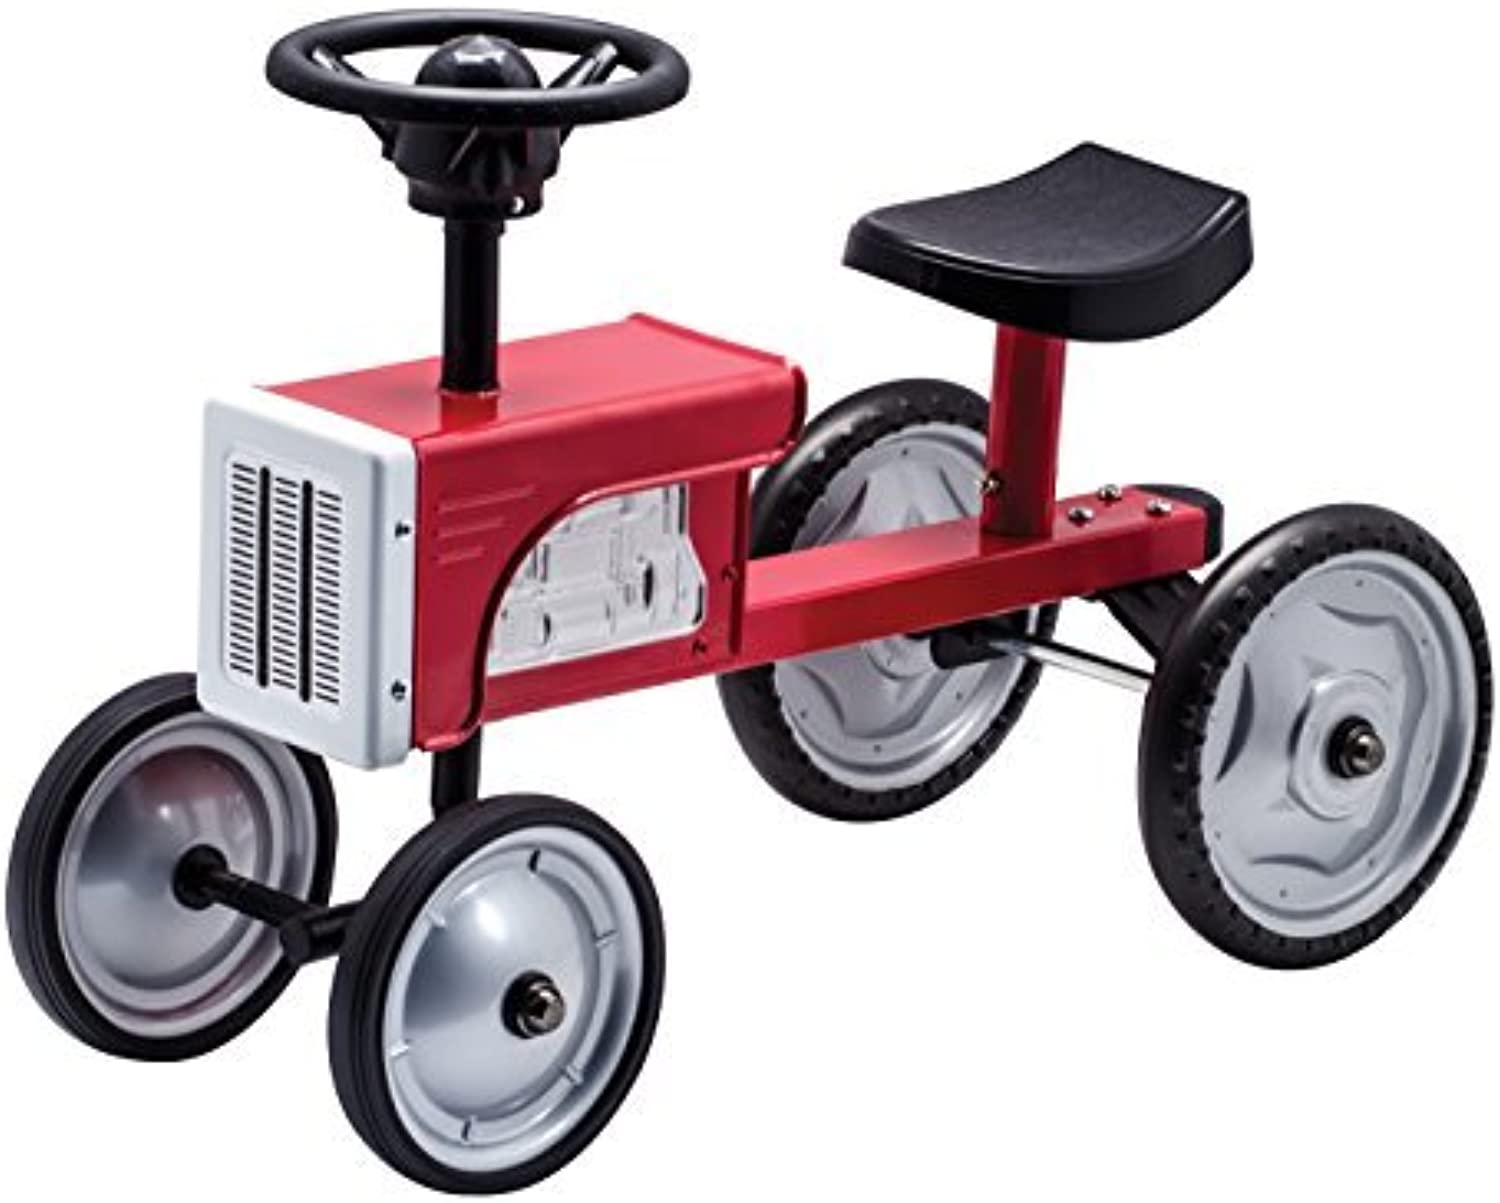 Schylling Tractor Ride On by Schylling